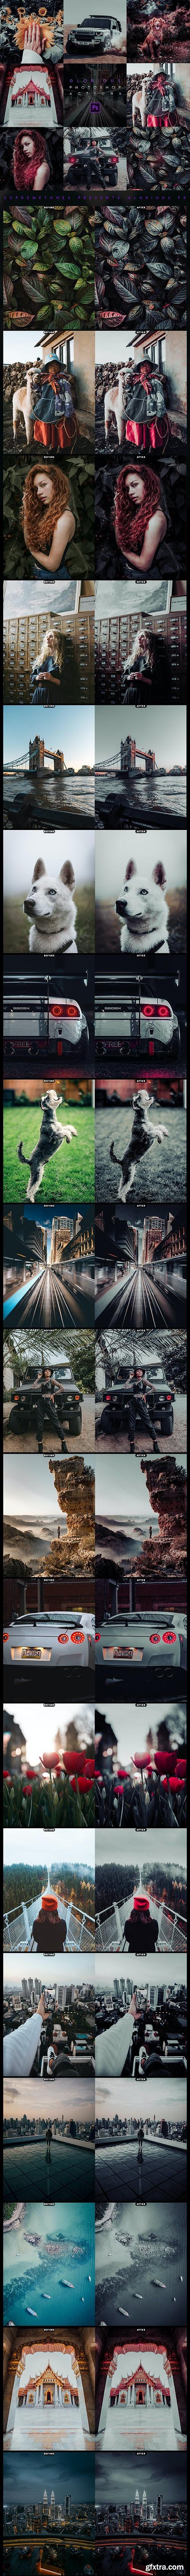 GraphicRiver - GLORIOUS Photoshop Actions 28316618